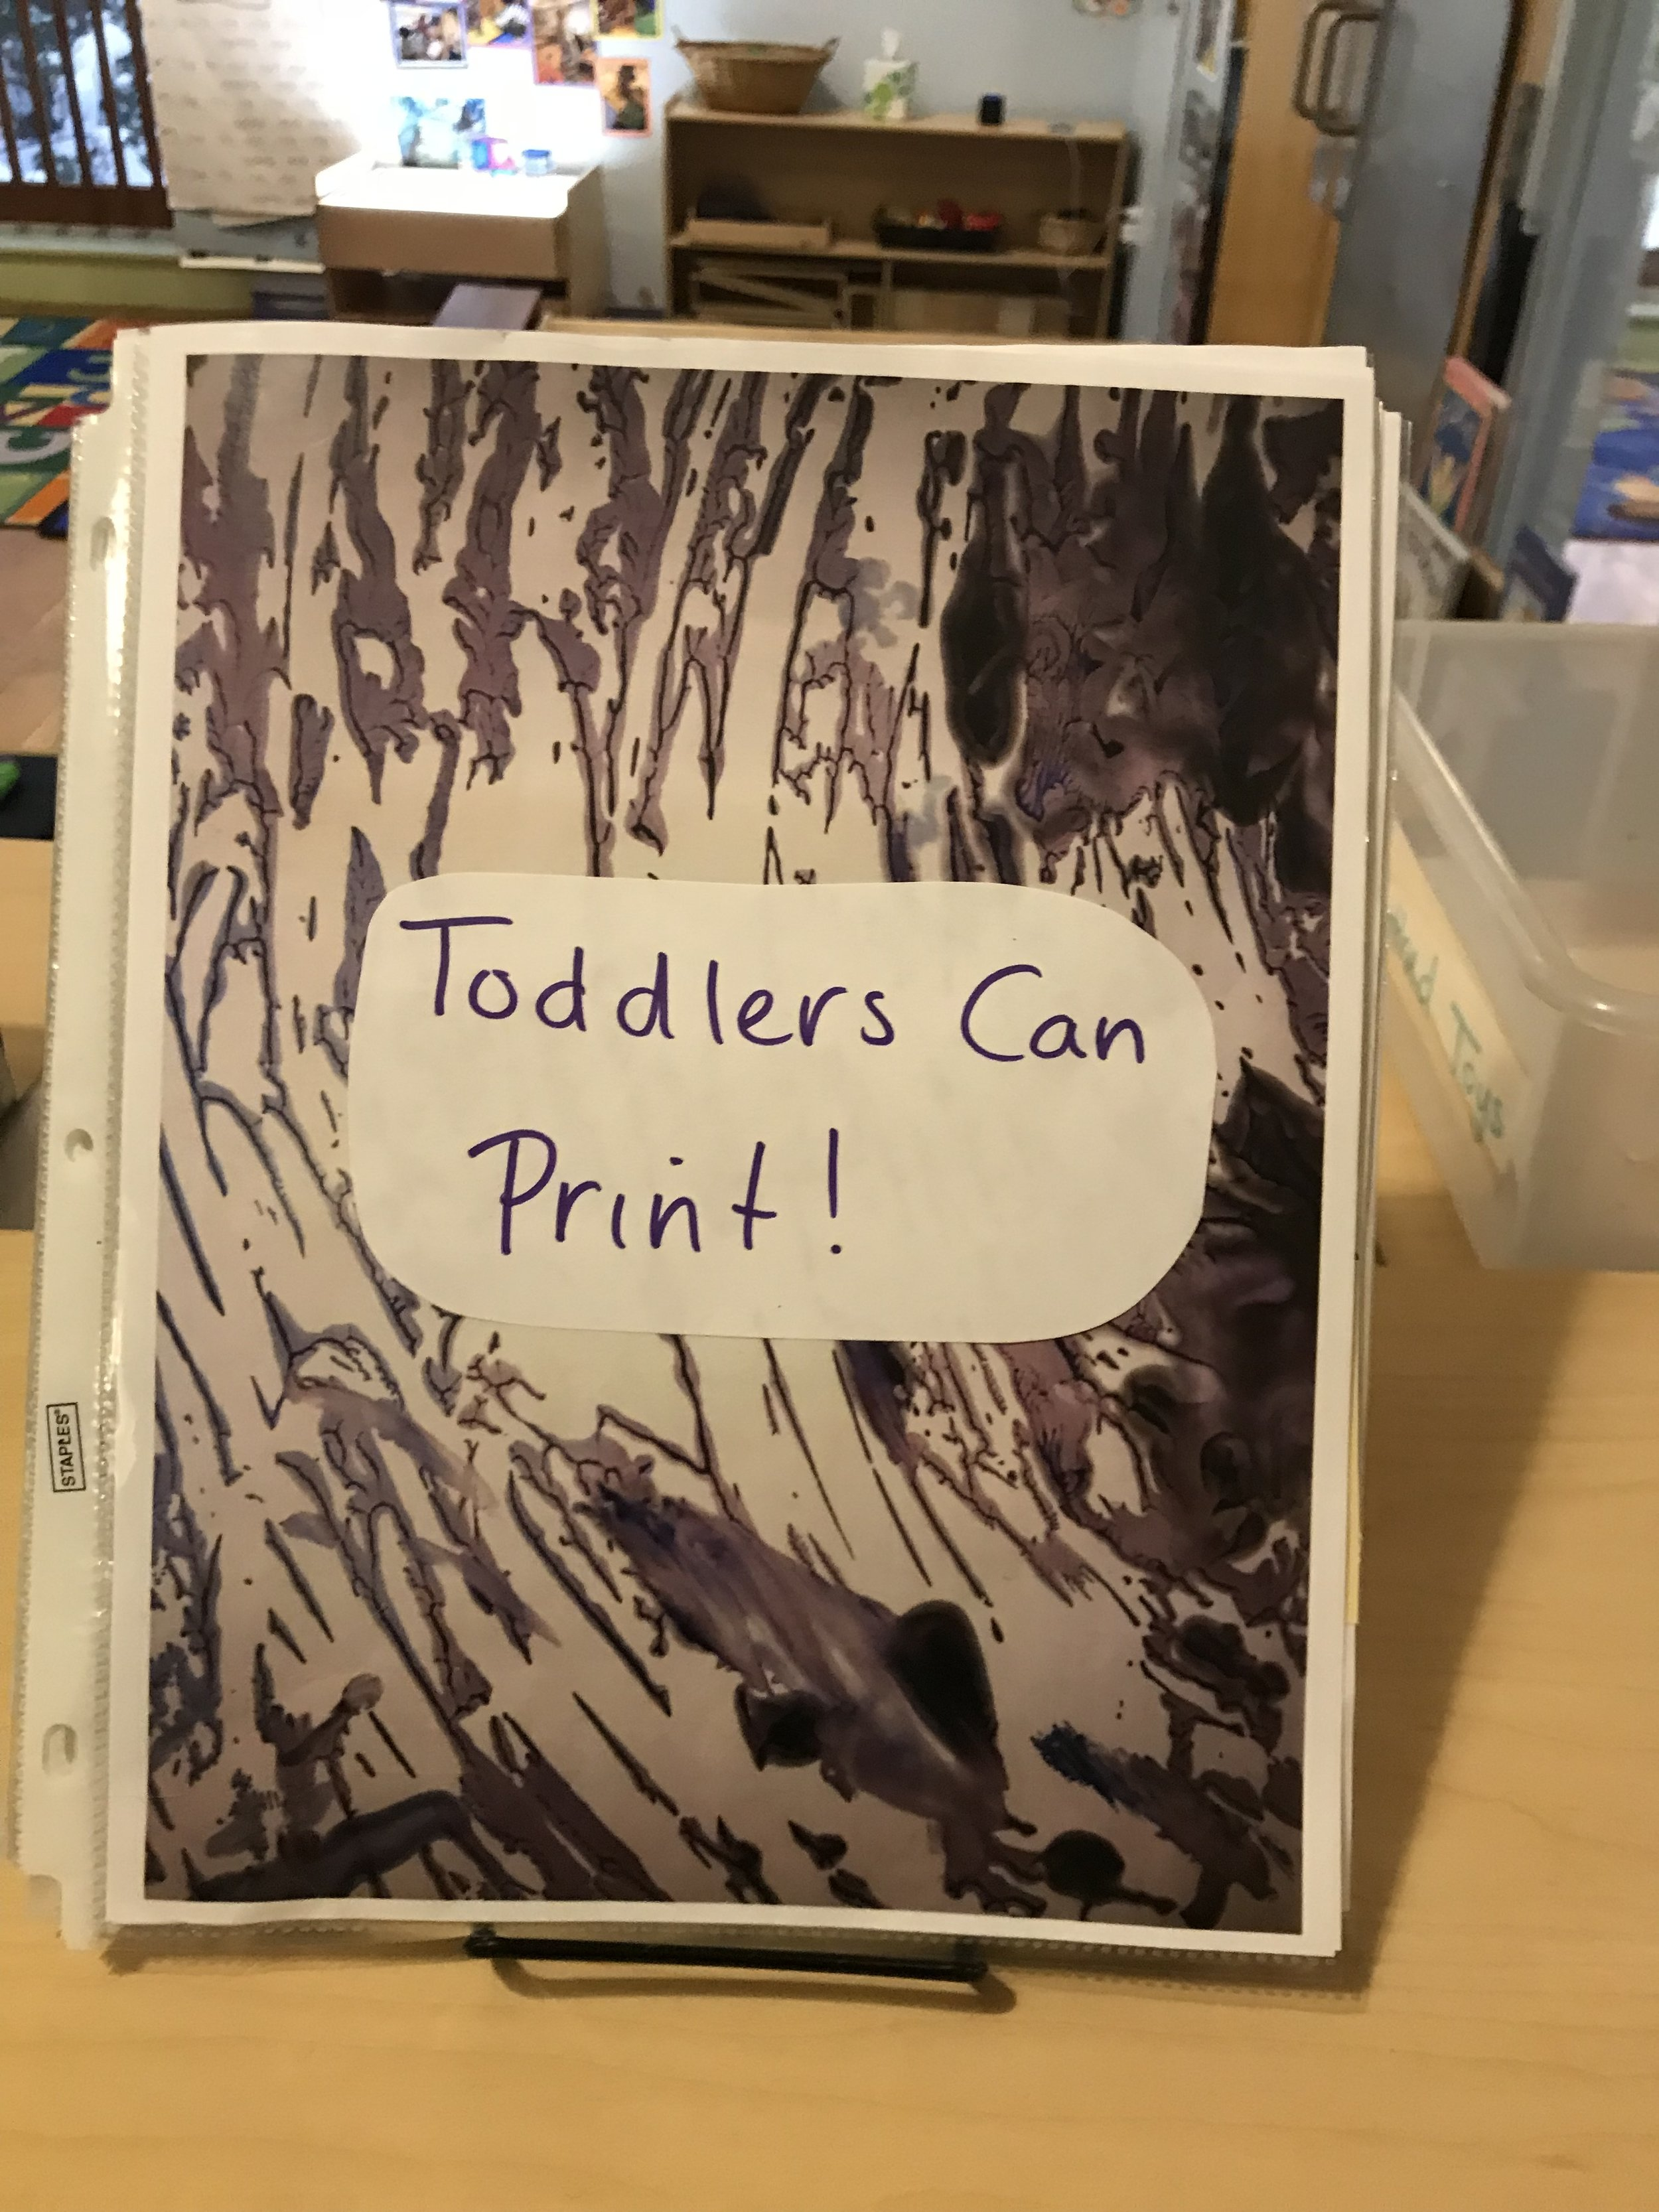 """Please check out our   """"Toddlers Can Print""""   book, it documents our printing explorations! It is located on top of the cubbies!"""